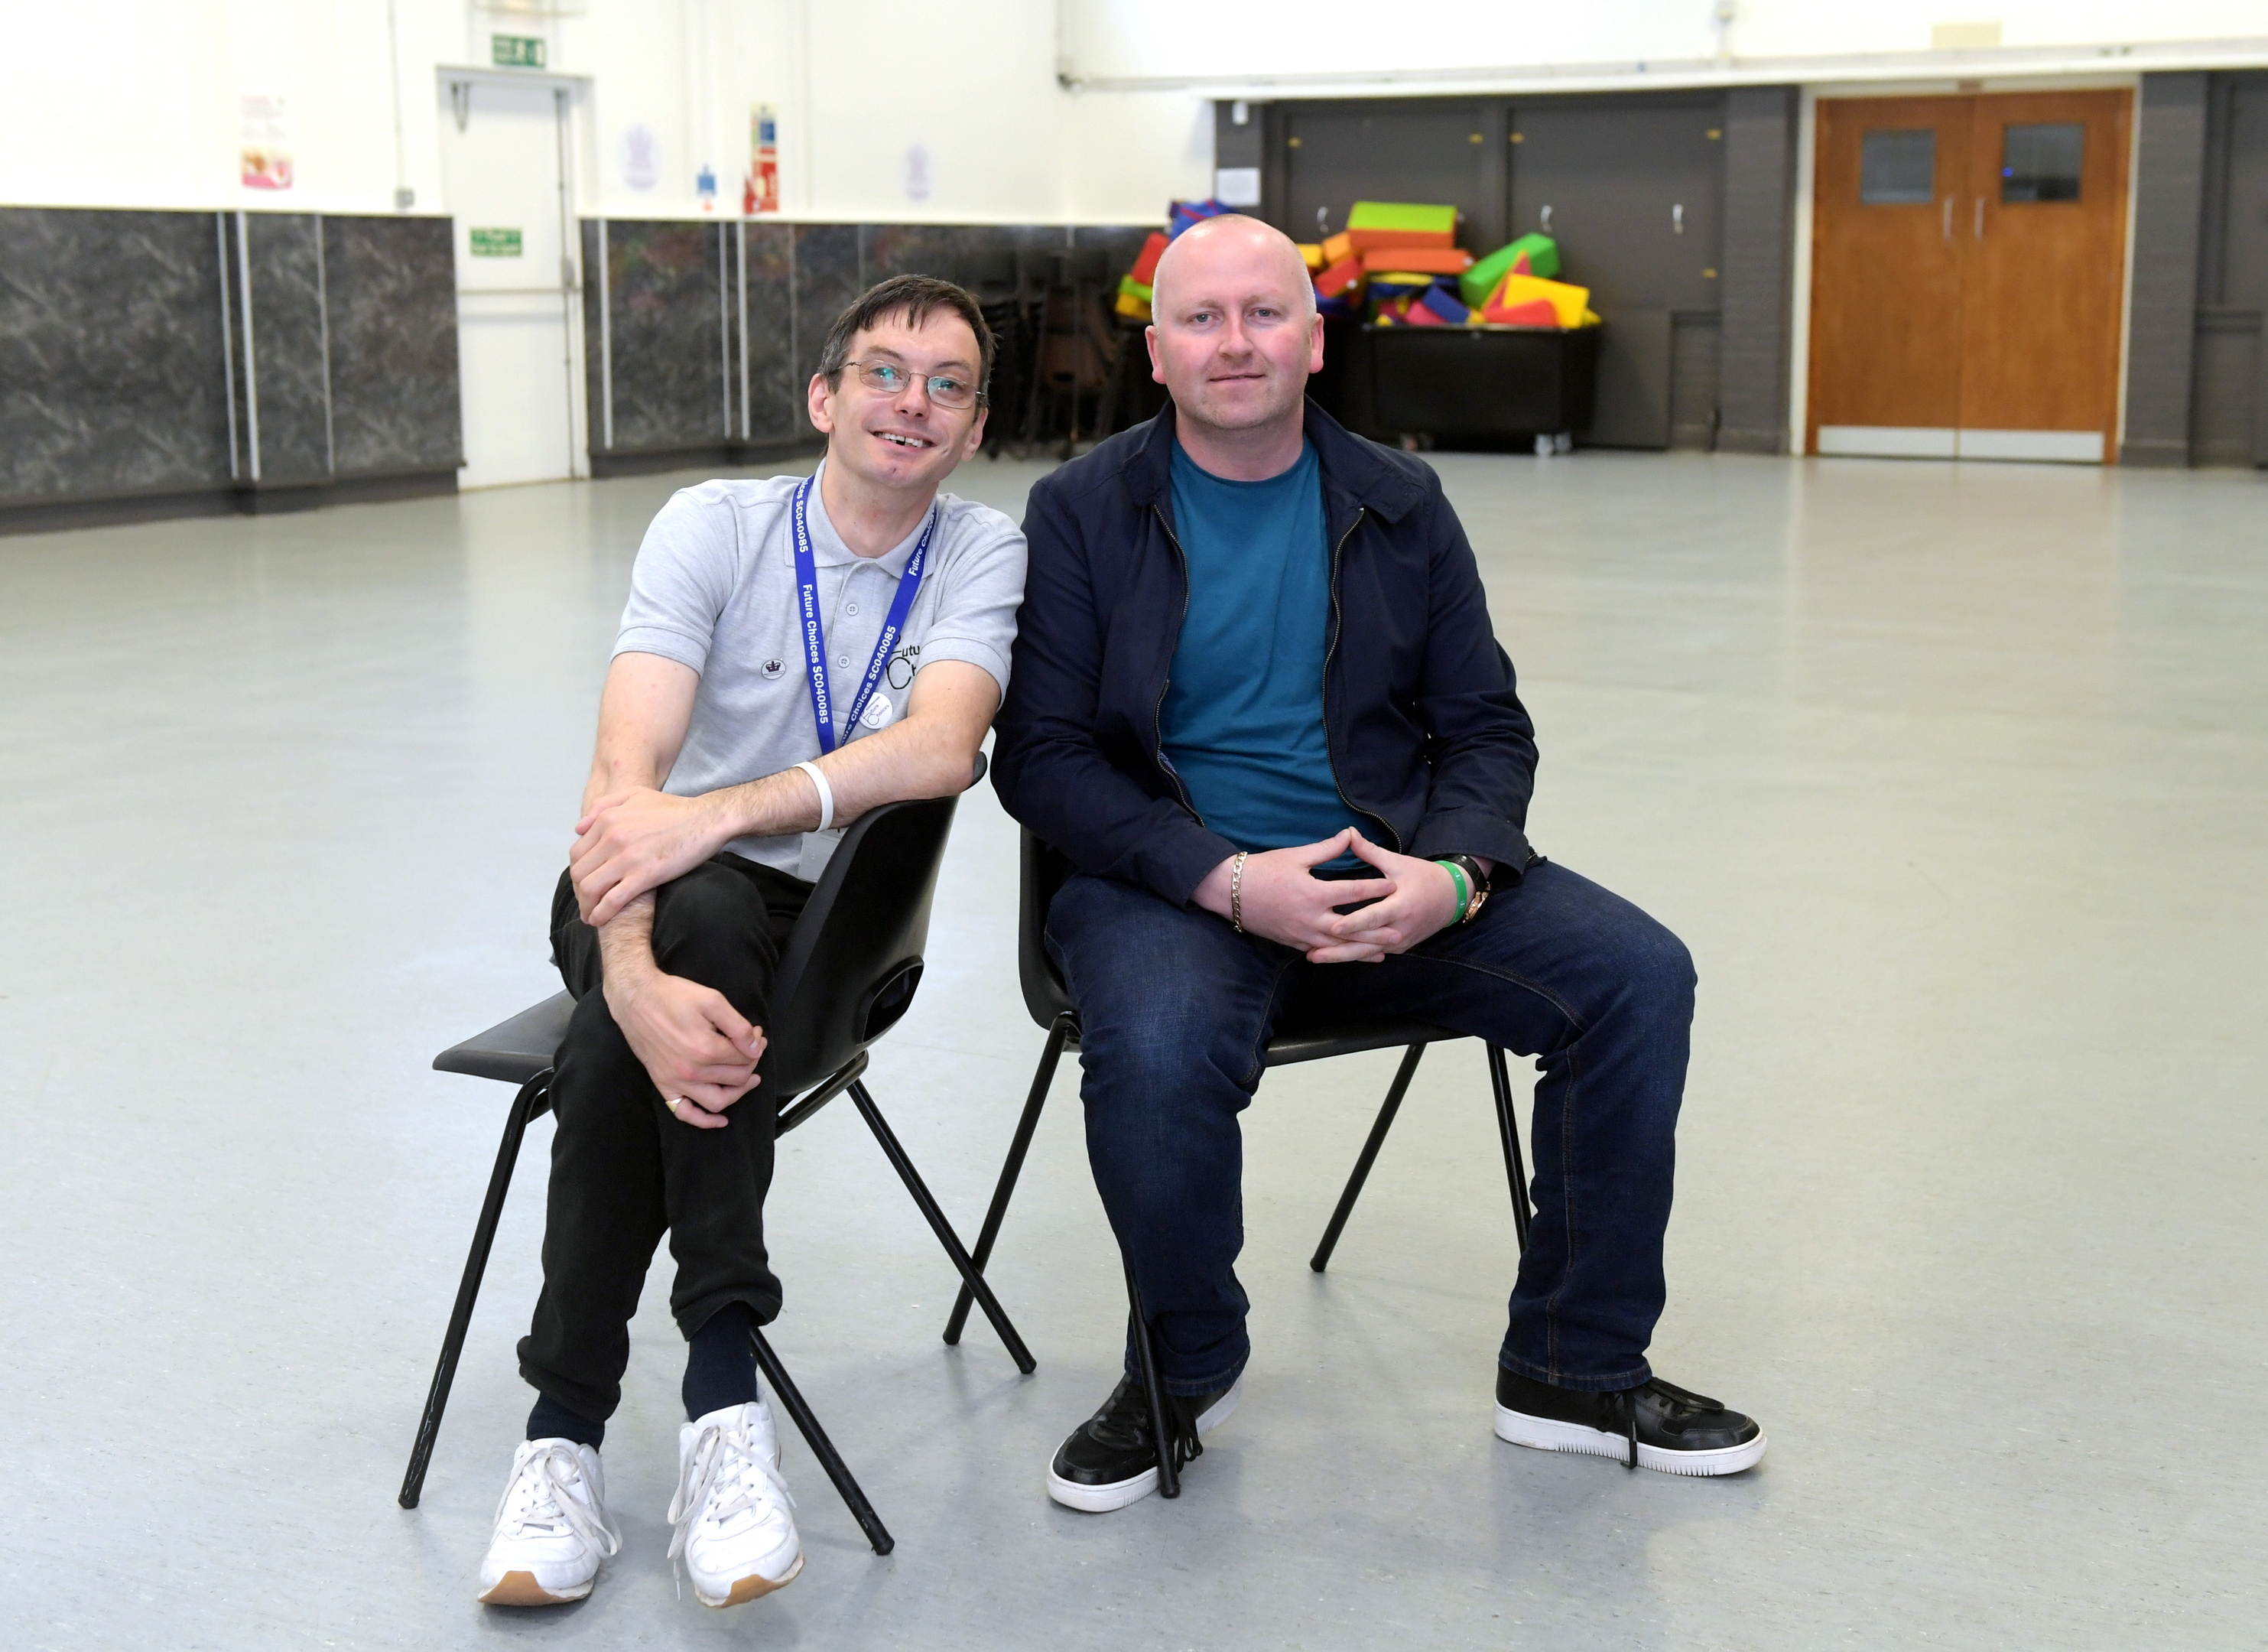 David Forbes and Paul O'Connor pictured at Inchgarth Community Centre. Picture by Kath Flannery.